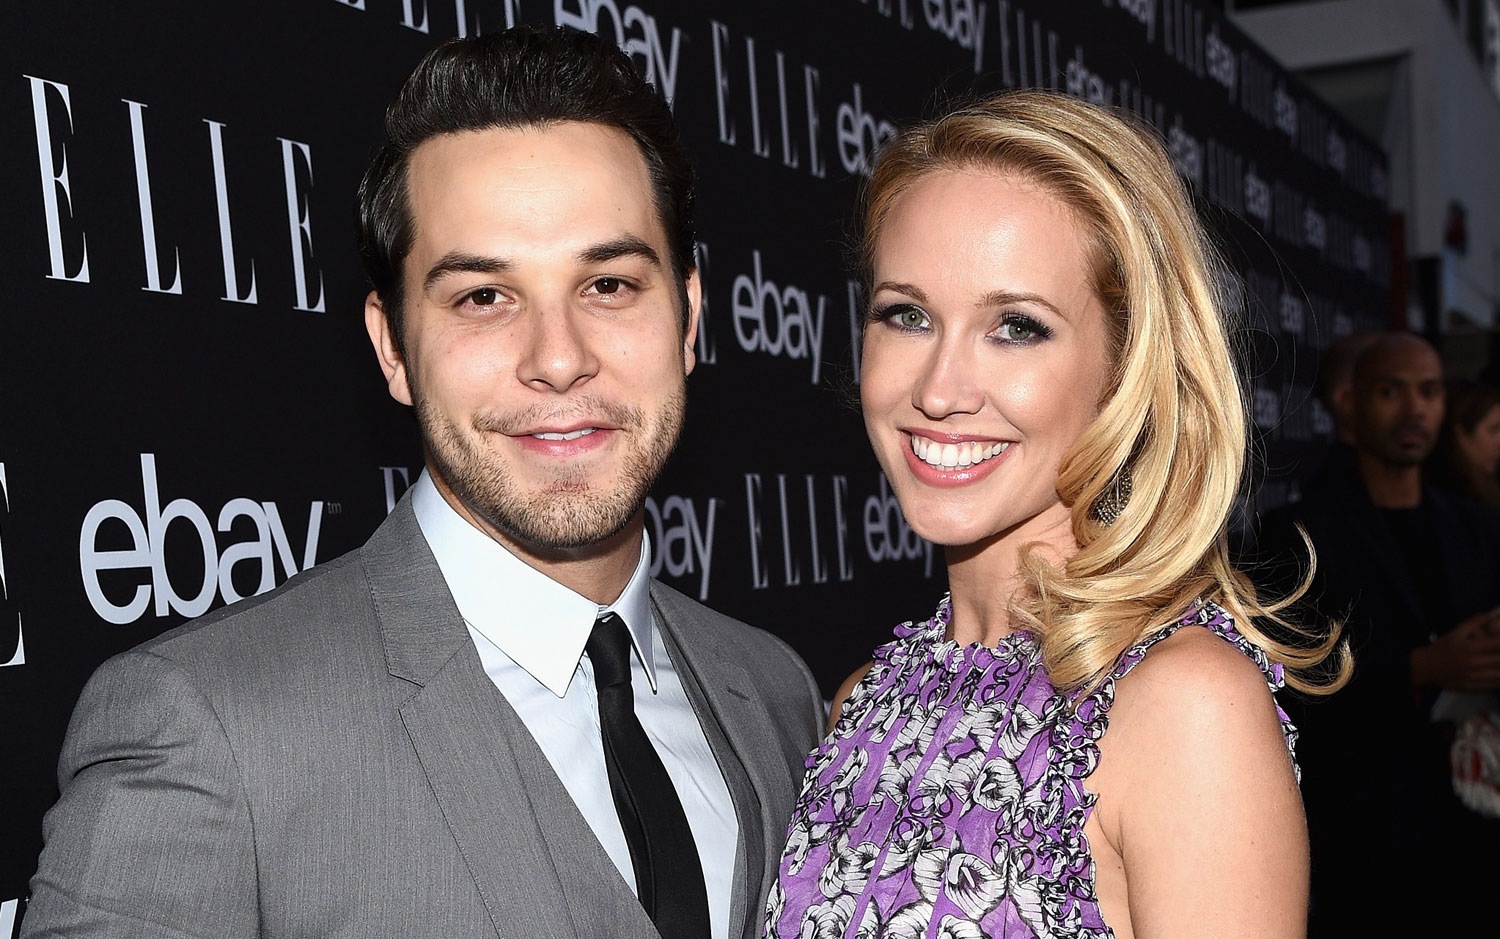 Pitch perfect stars dating